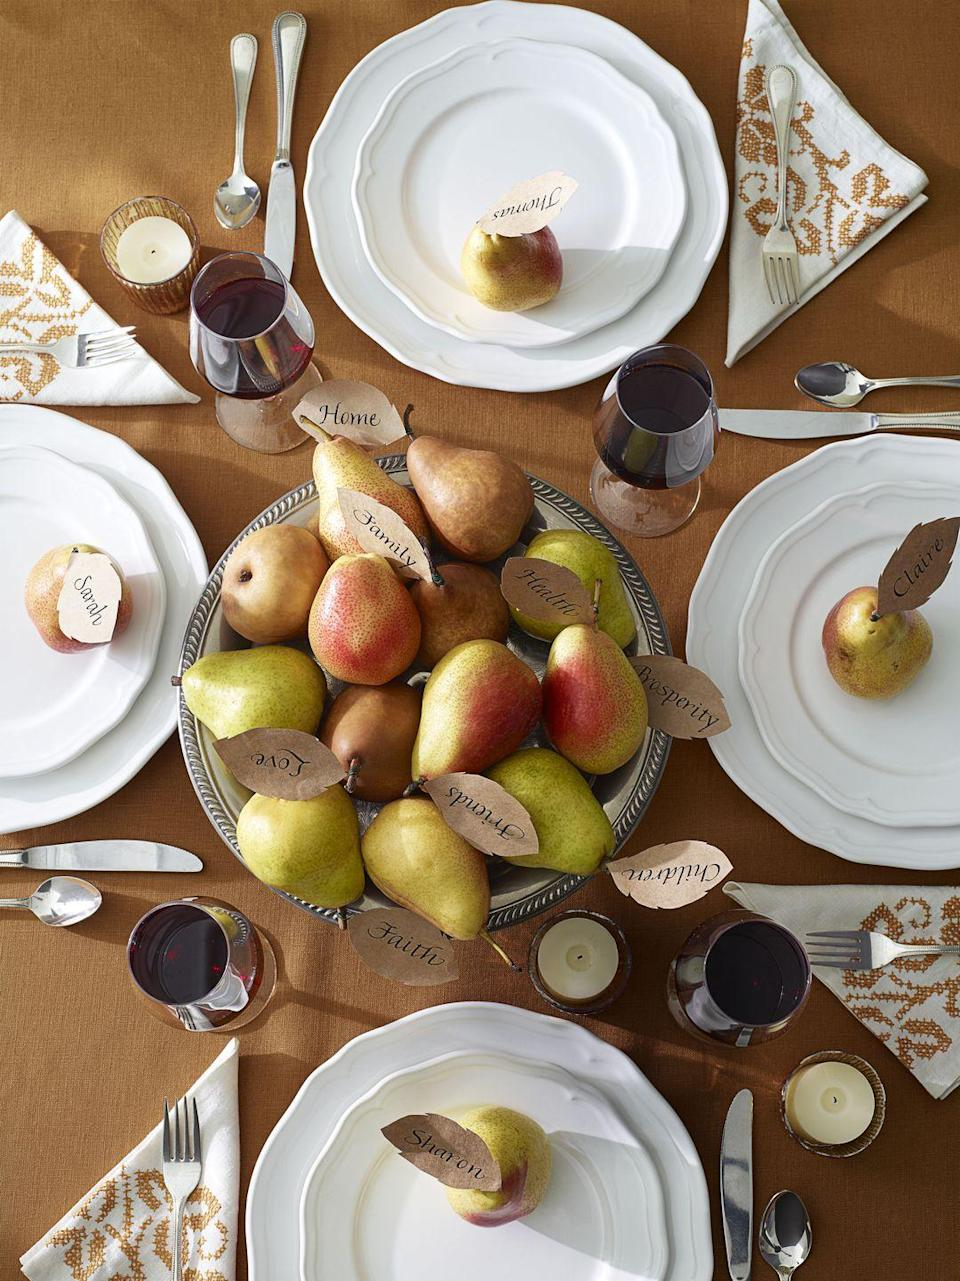 <p>Start off the celebration by asking family members to write down what they're grateful for on paper leaves. Once everyone's finished, stick them inside a bowl of pears to remind your dinner guests what the holiday is really about. </p>